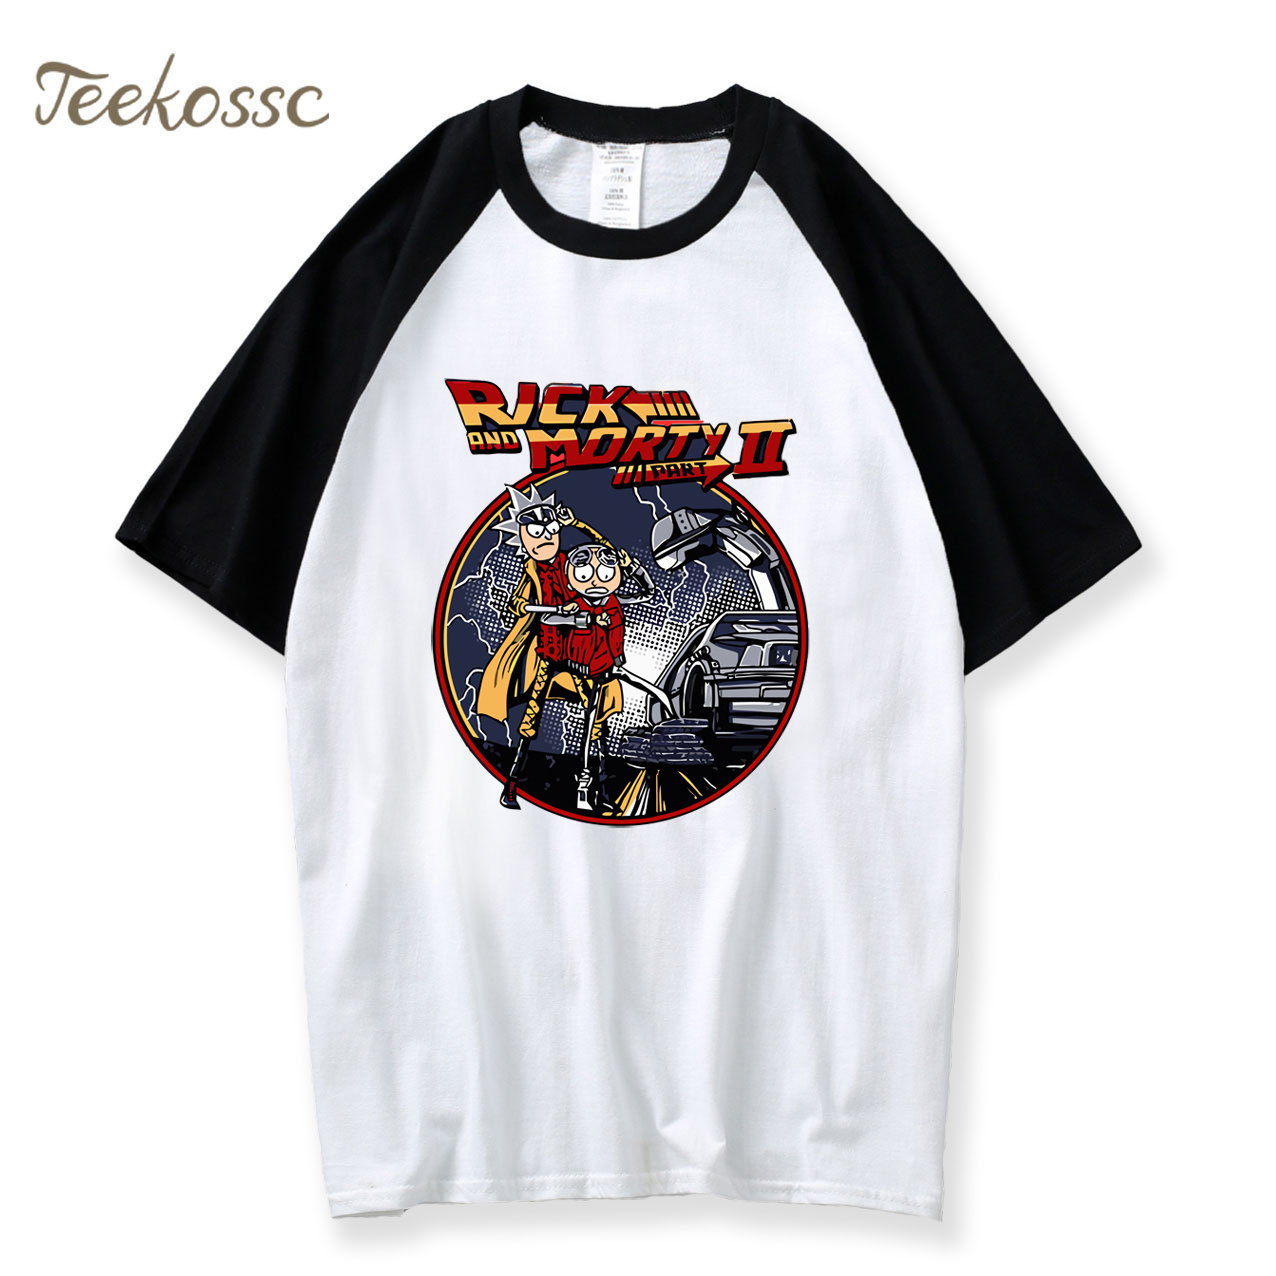 Back To The Future T Shirt Men Rick and Morty Tshirt Anime Tshirts 2018 Summer Top Tee Movie White Funny T-Shirt Camiseta Hombre